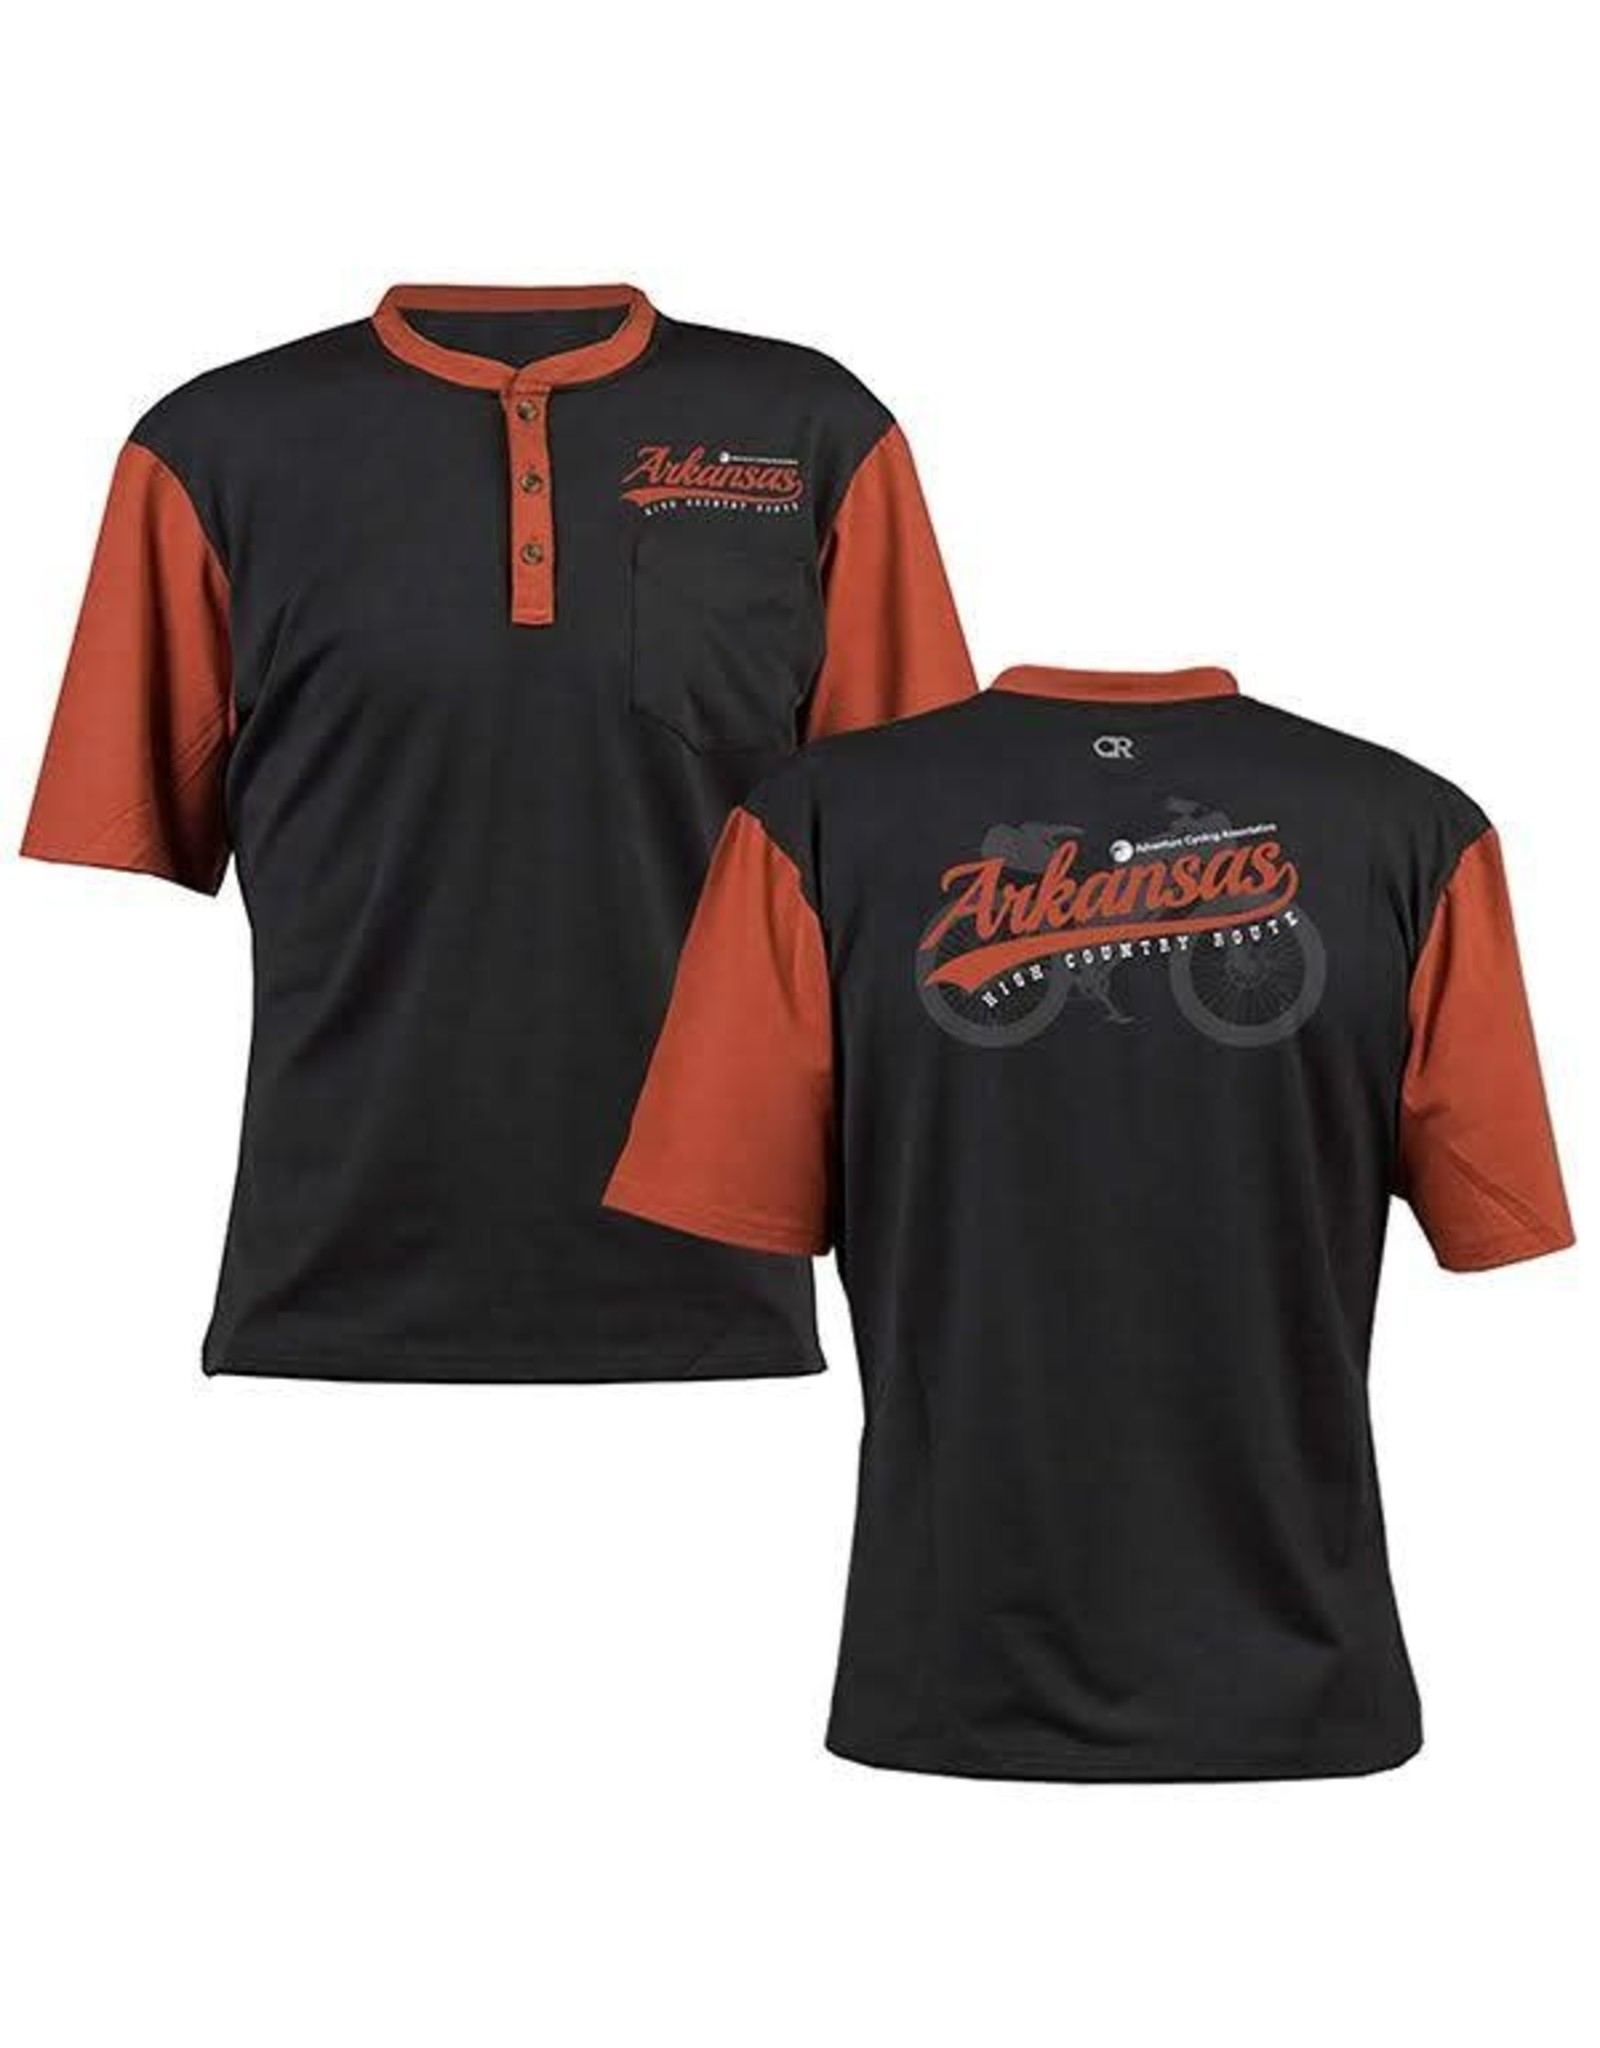 ACA AR High Country Route Jersey, Lg